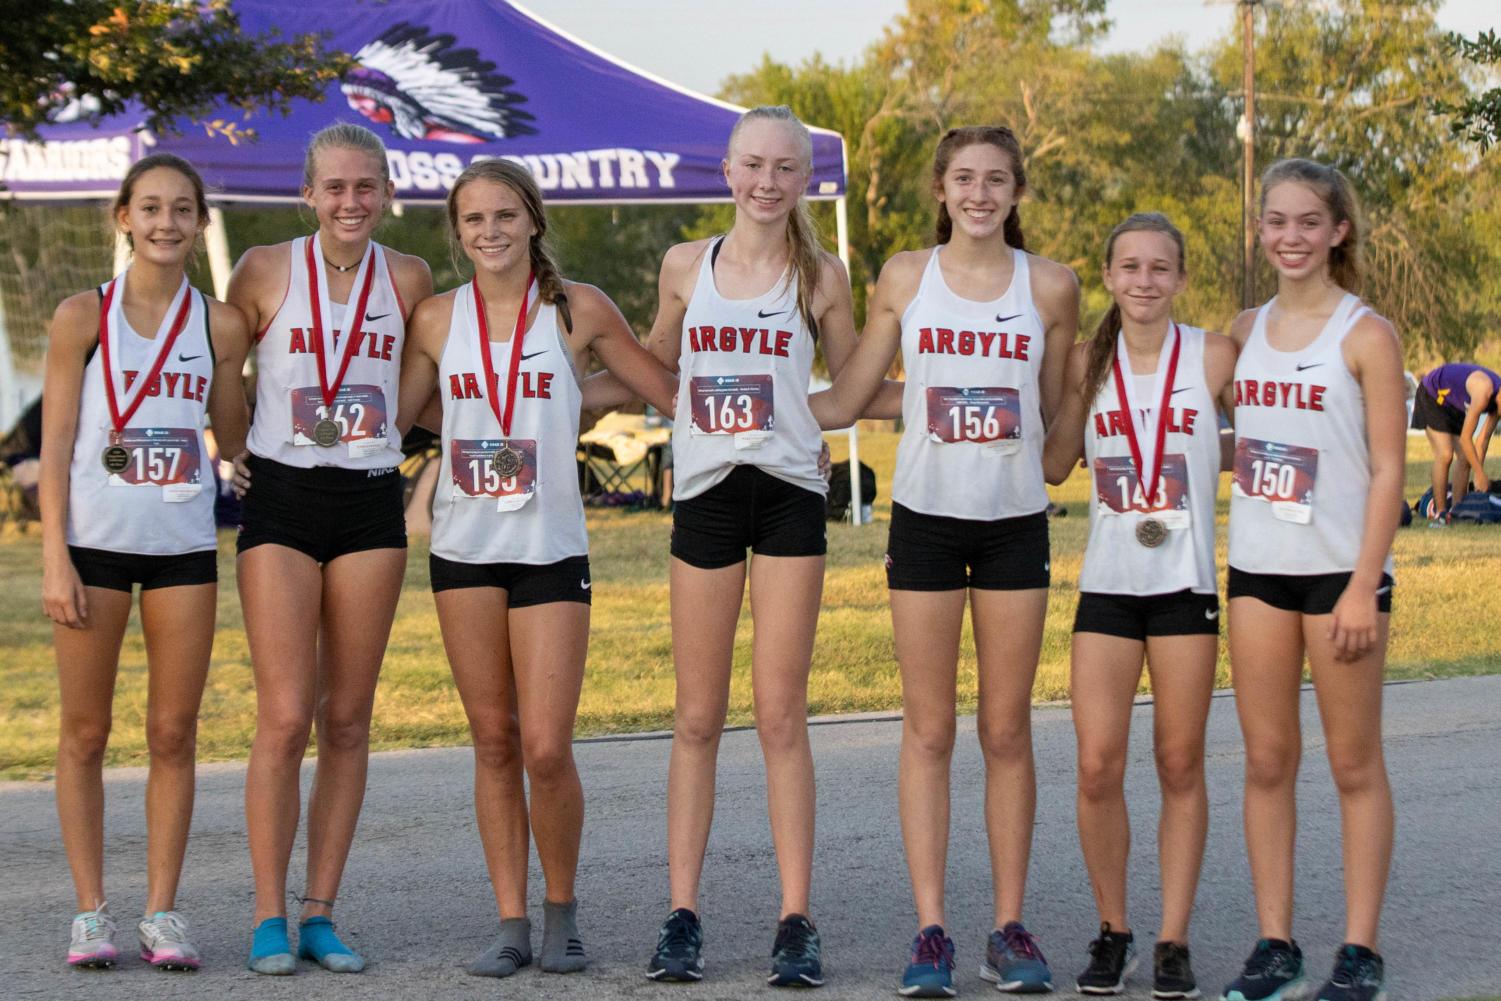 The Argyle Eagles Cross Country team shows off their medals at the Gingerbread Jamboree at Camp Copass in Denton, Texas, on August 29, 2019. (Andrew Fritz | The Talon News)